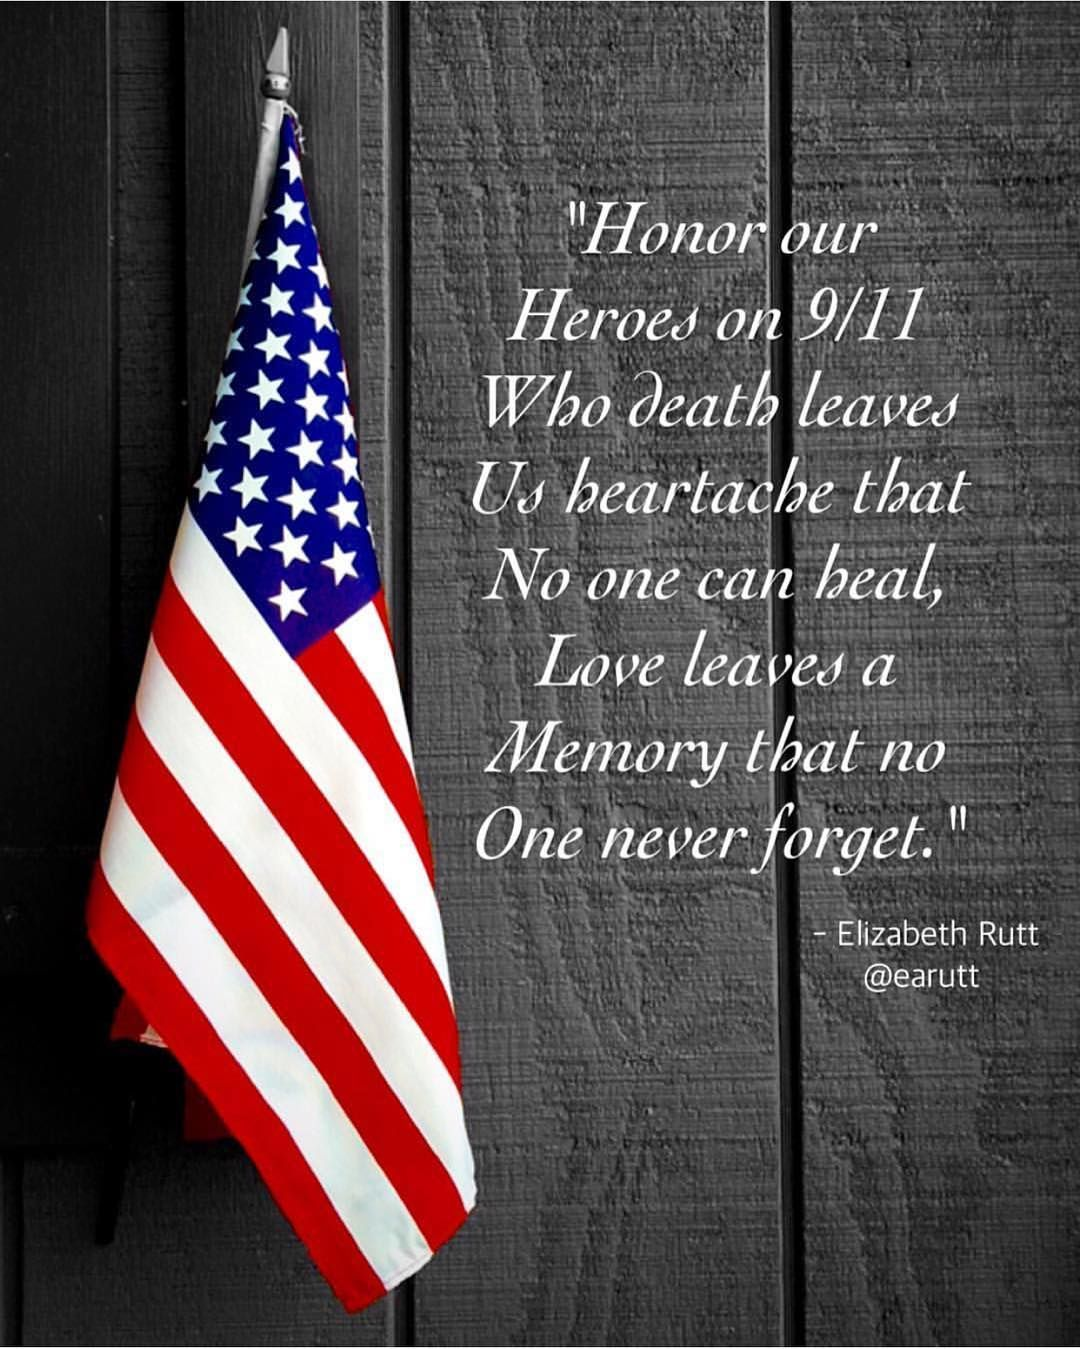 9 11 Never Forget Quotes Great Quote & Visual Createdearutt In Honor Of The 15Th